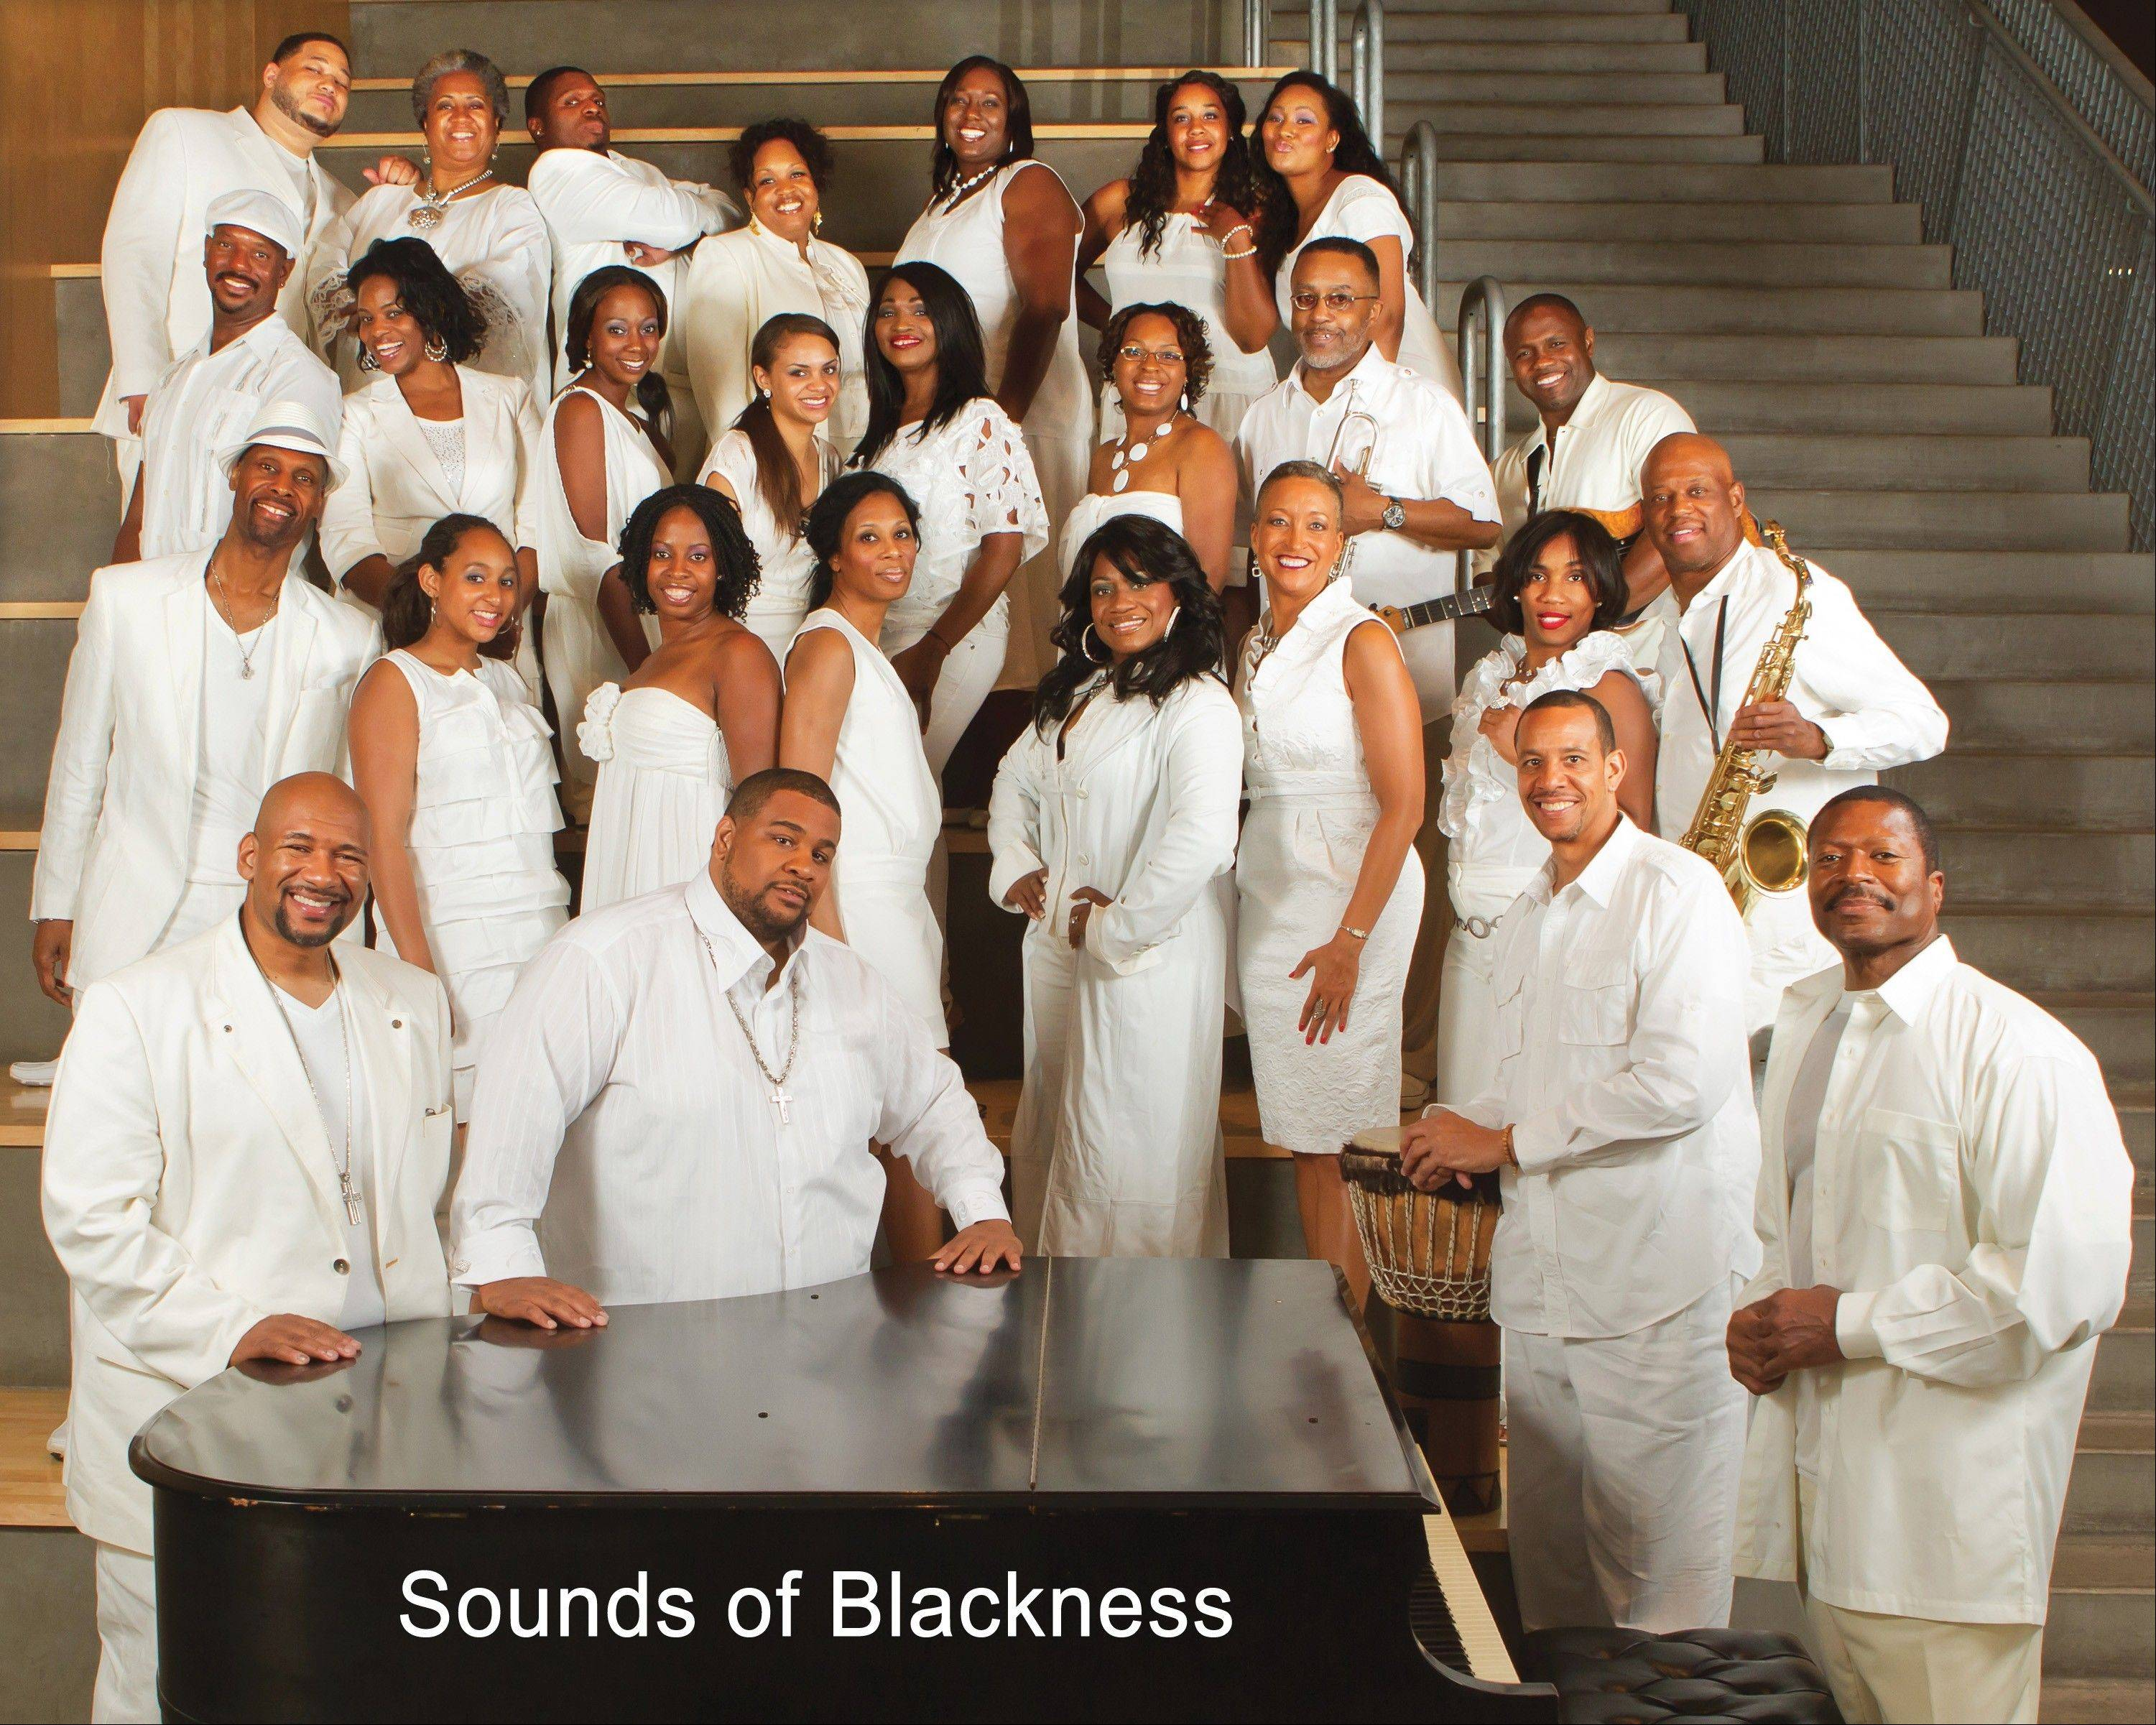 The Grammy Award-winning group Sounds of Blackness will perform at the College of Lake County�s 29th Annual Salute to Gospel Music program at 7 p.m. Saturday, March 2, at the Genesee Theatre.